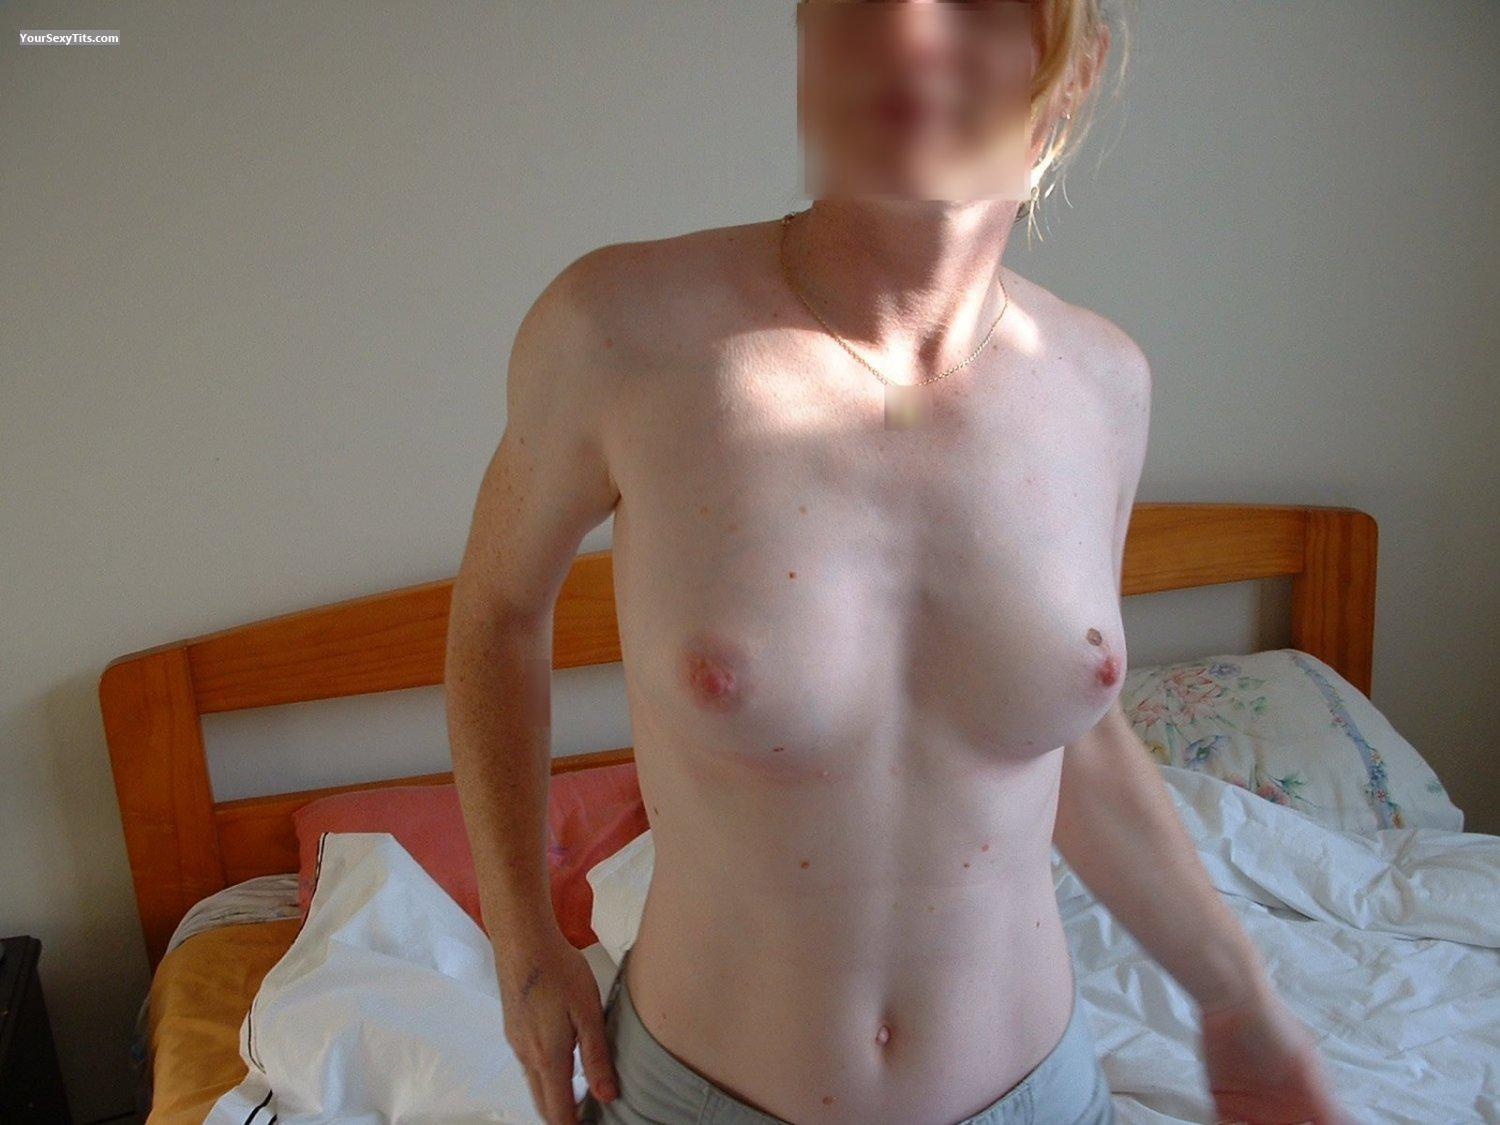 Medium Tits My Wifes Awesome Boobies